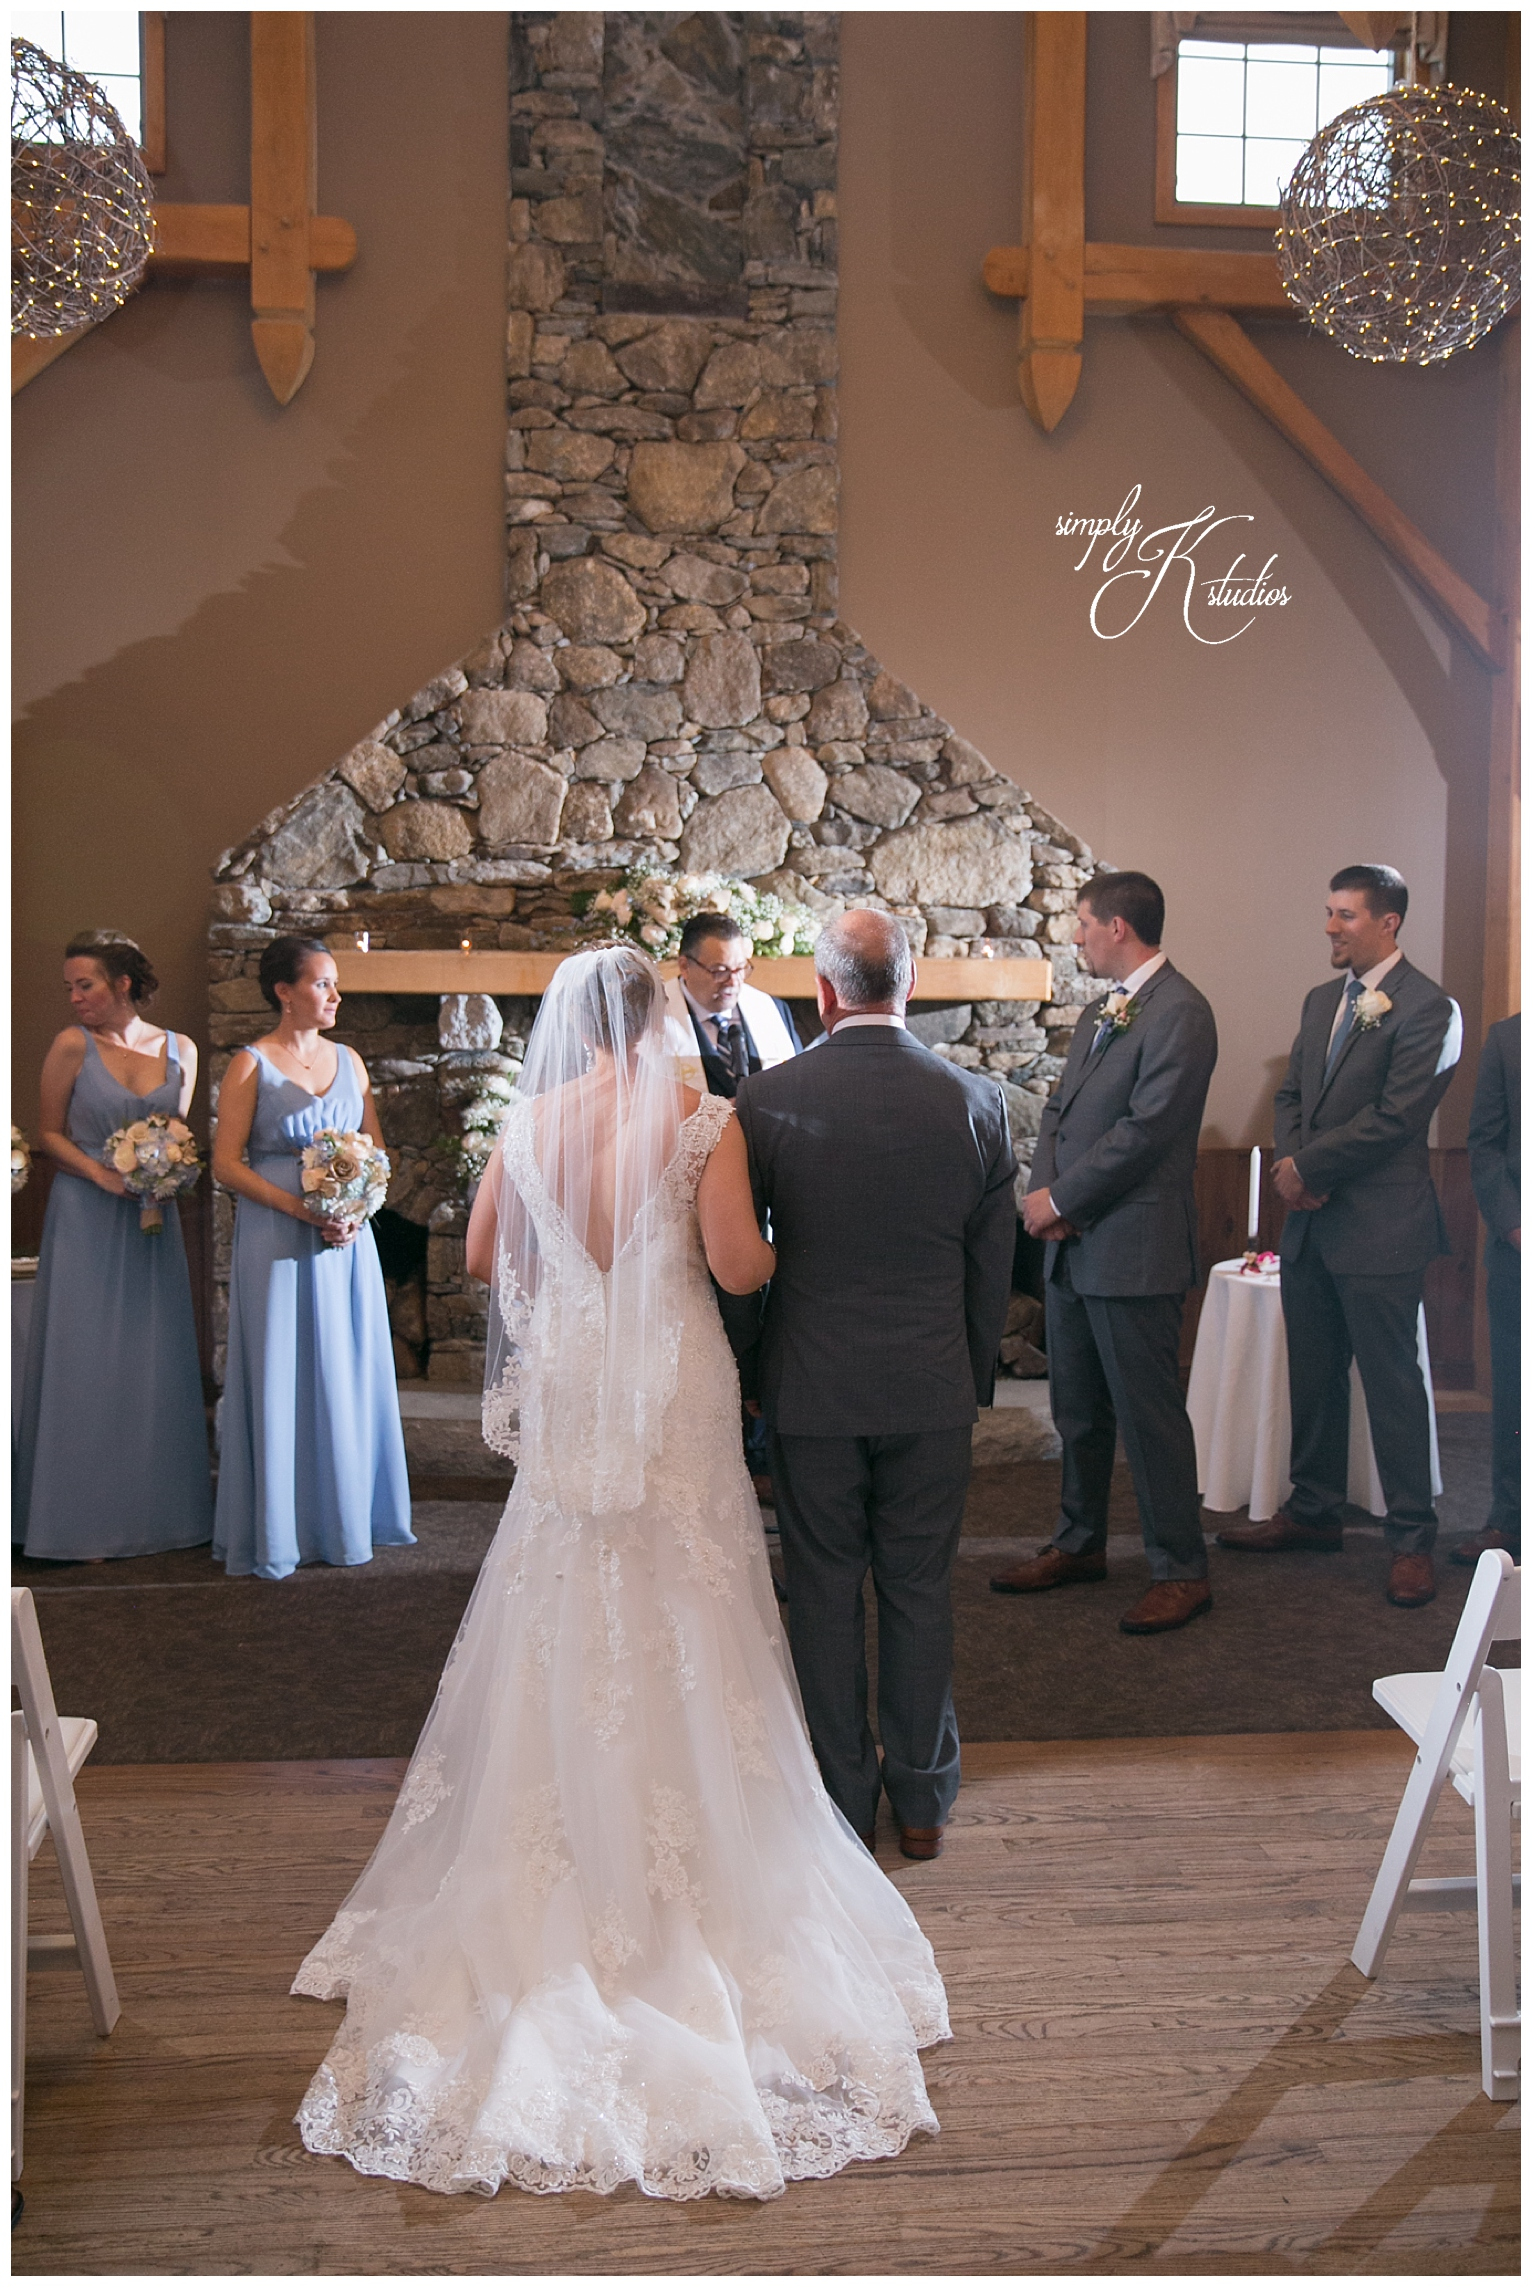 Wedding Ceremony Indoors at Harrington Farm.jpg